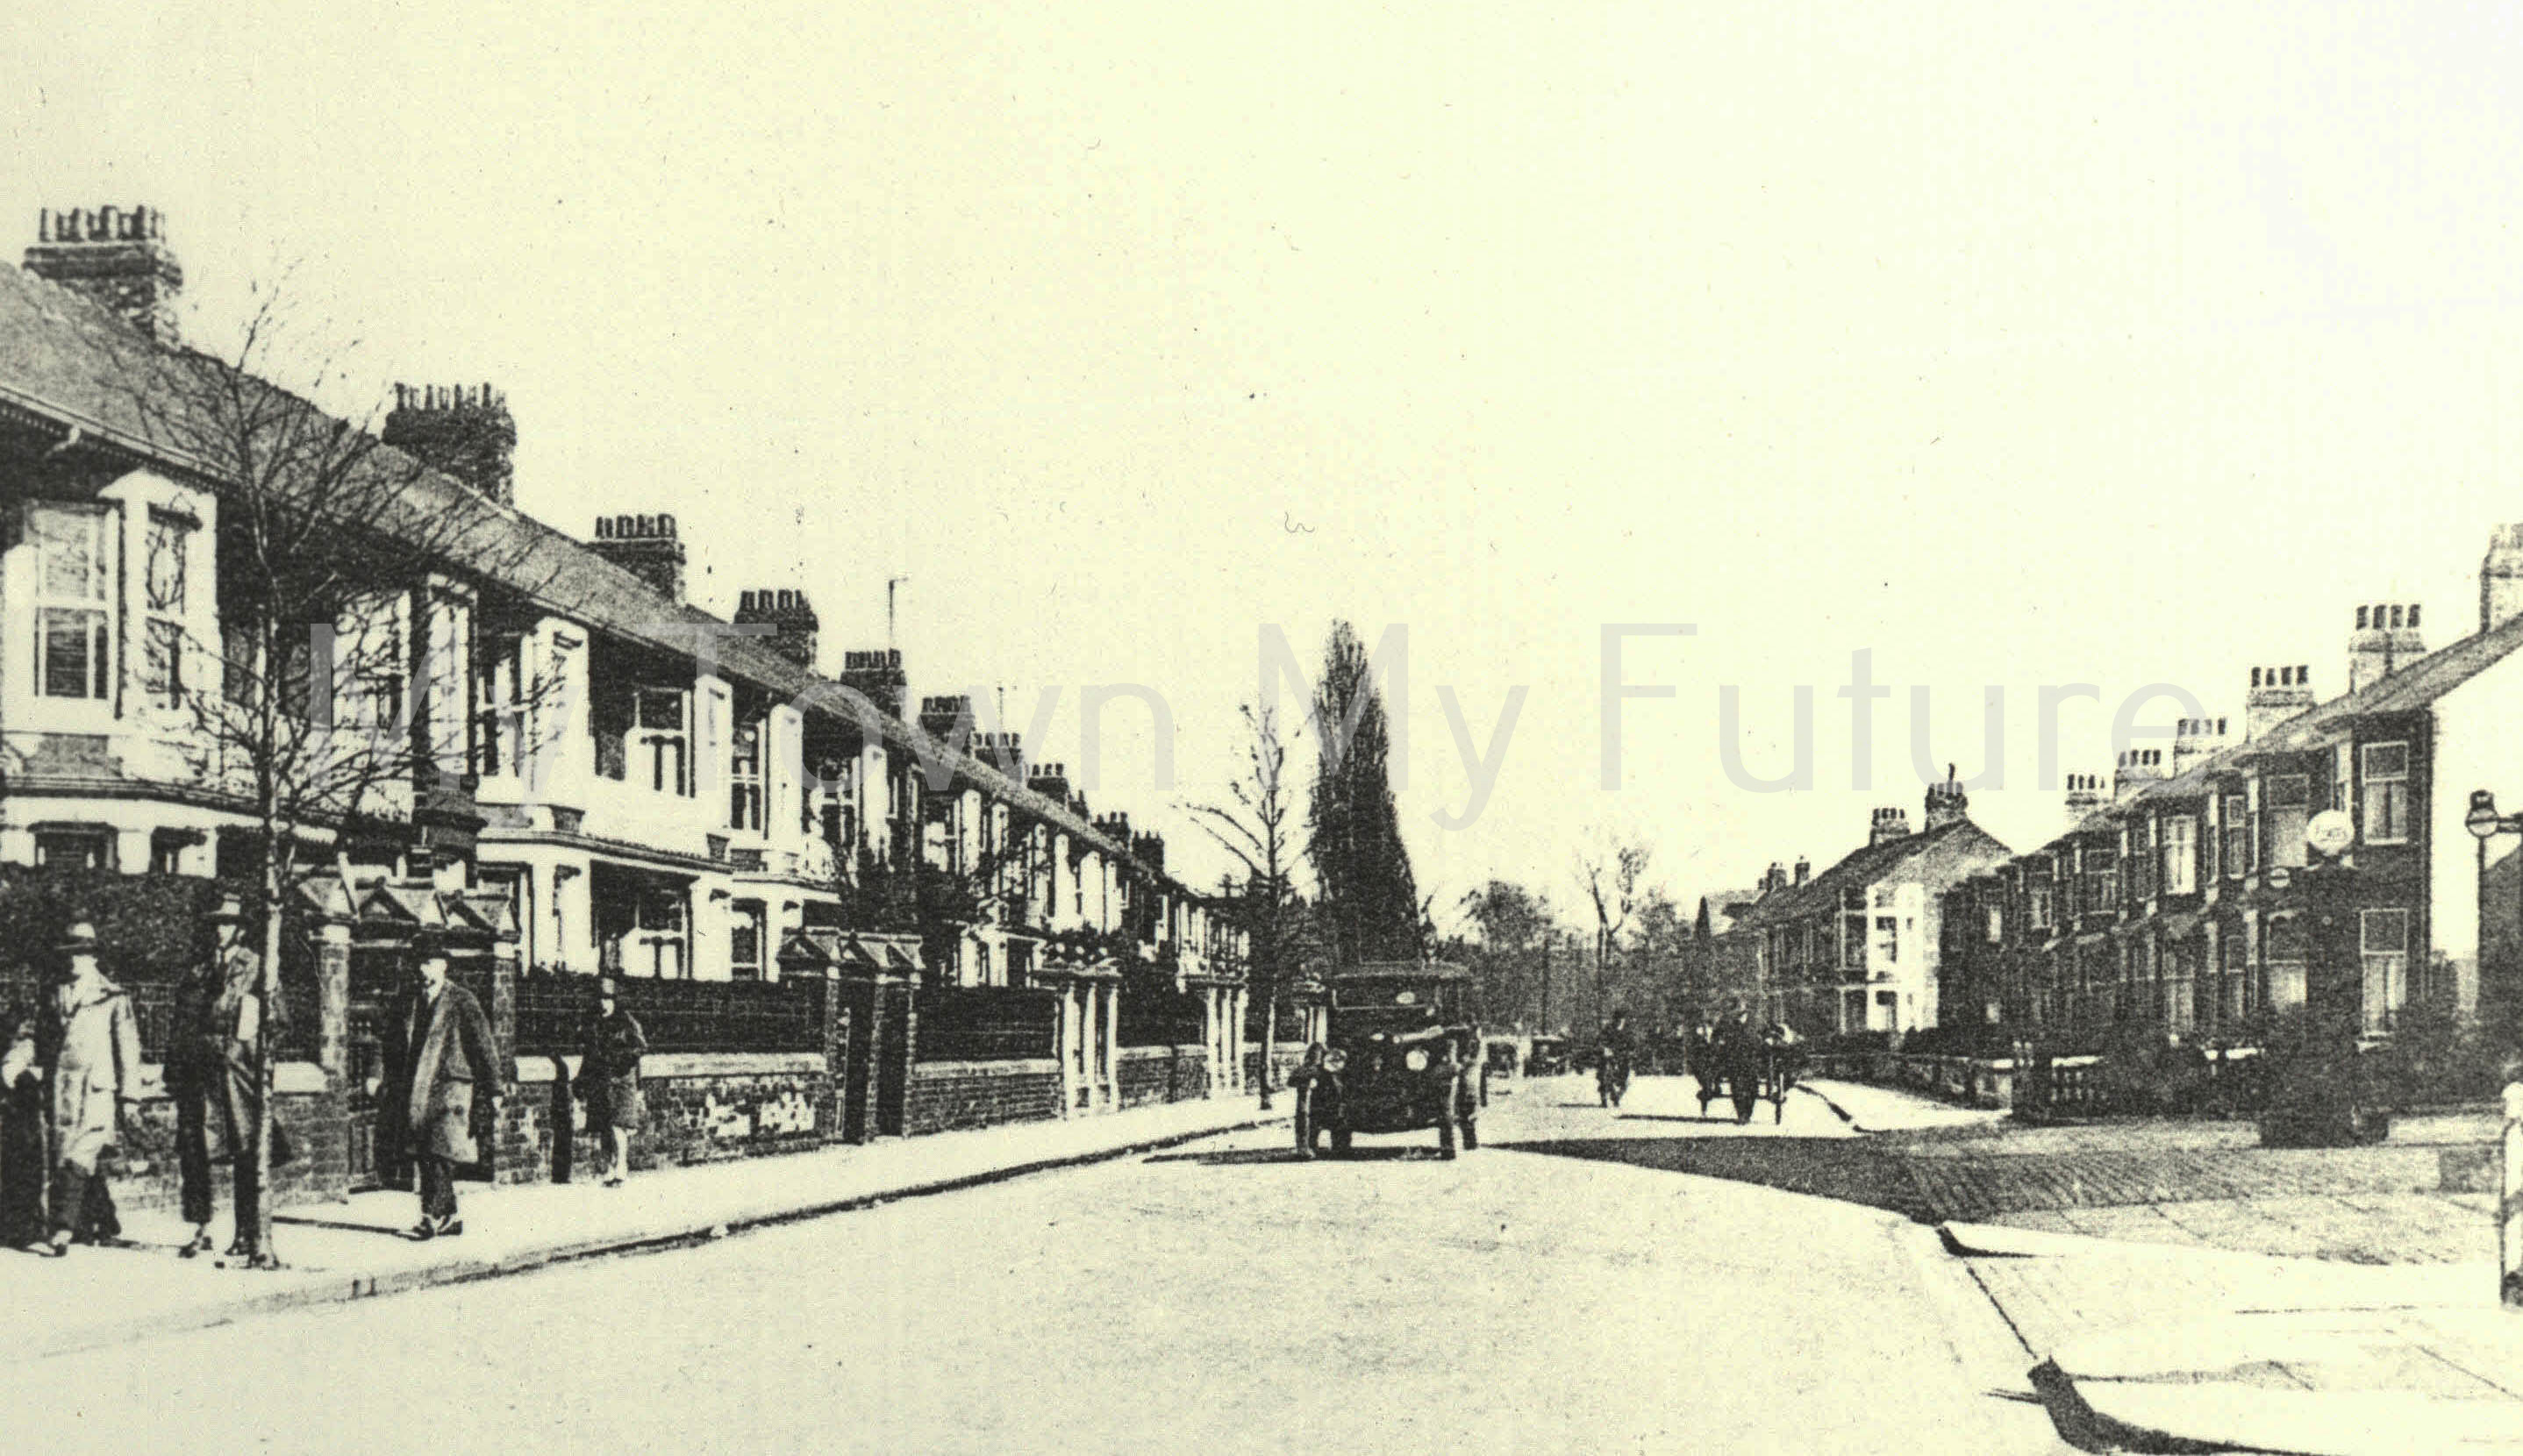 Oxford Road, Linthorpe, Middlesbrough